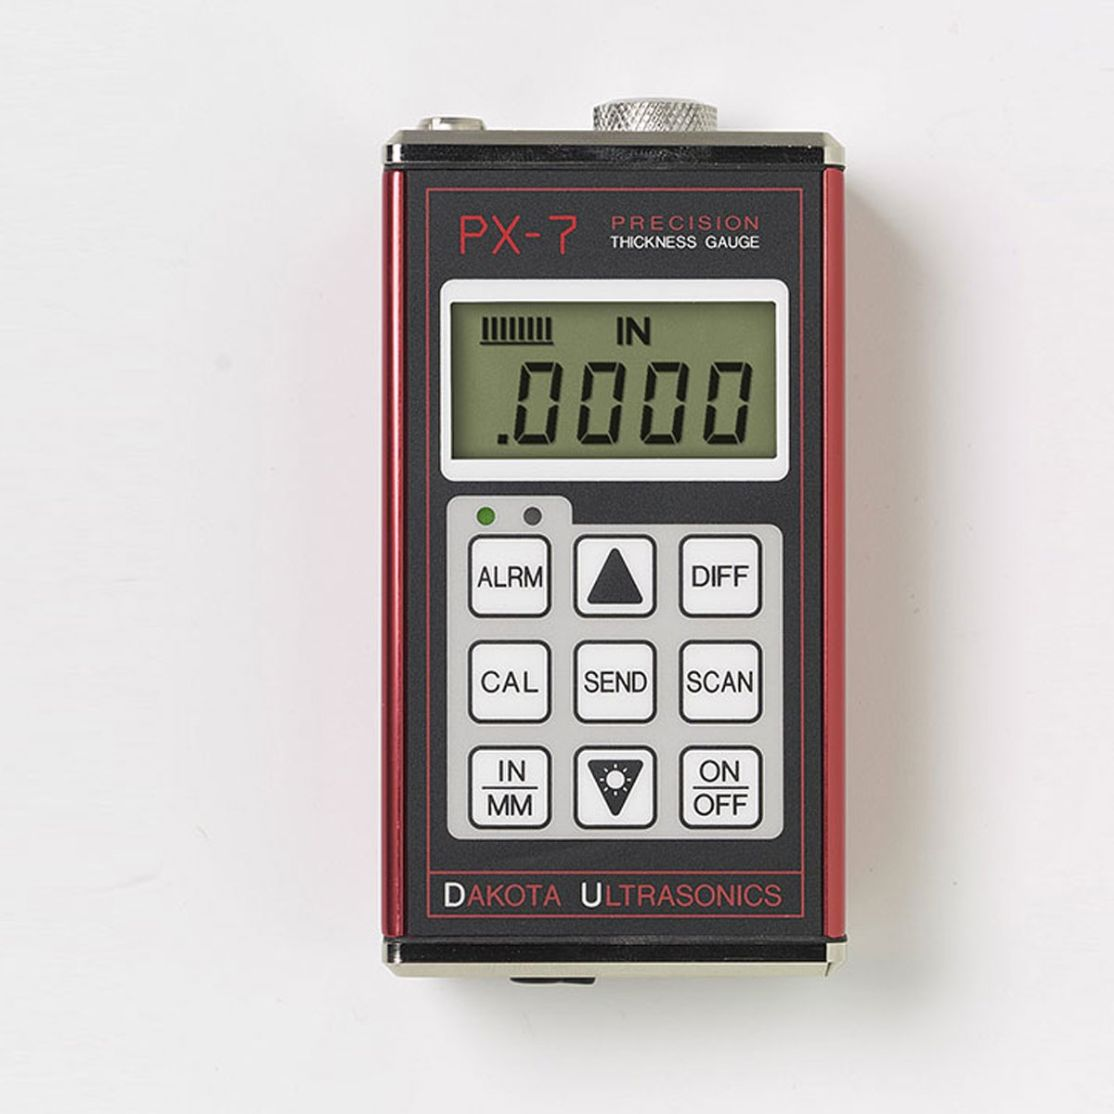 PX-7 Precision Thickness Gauge